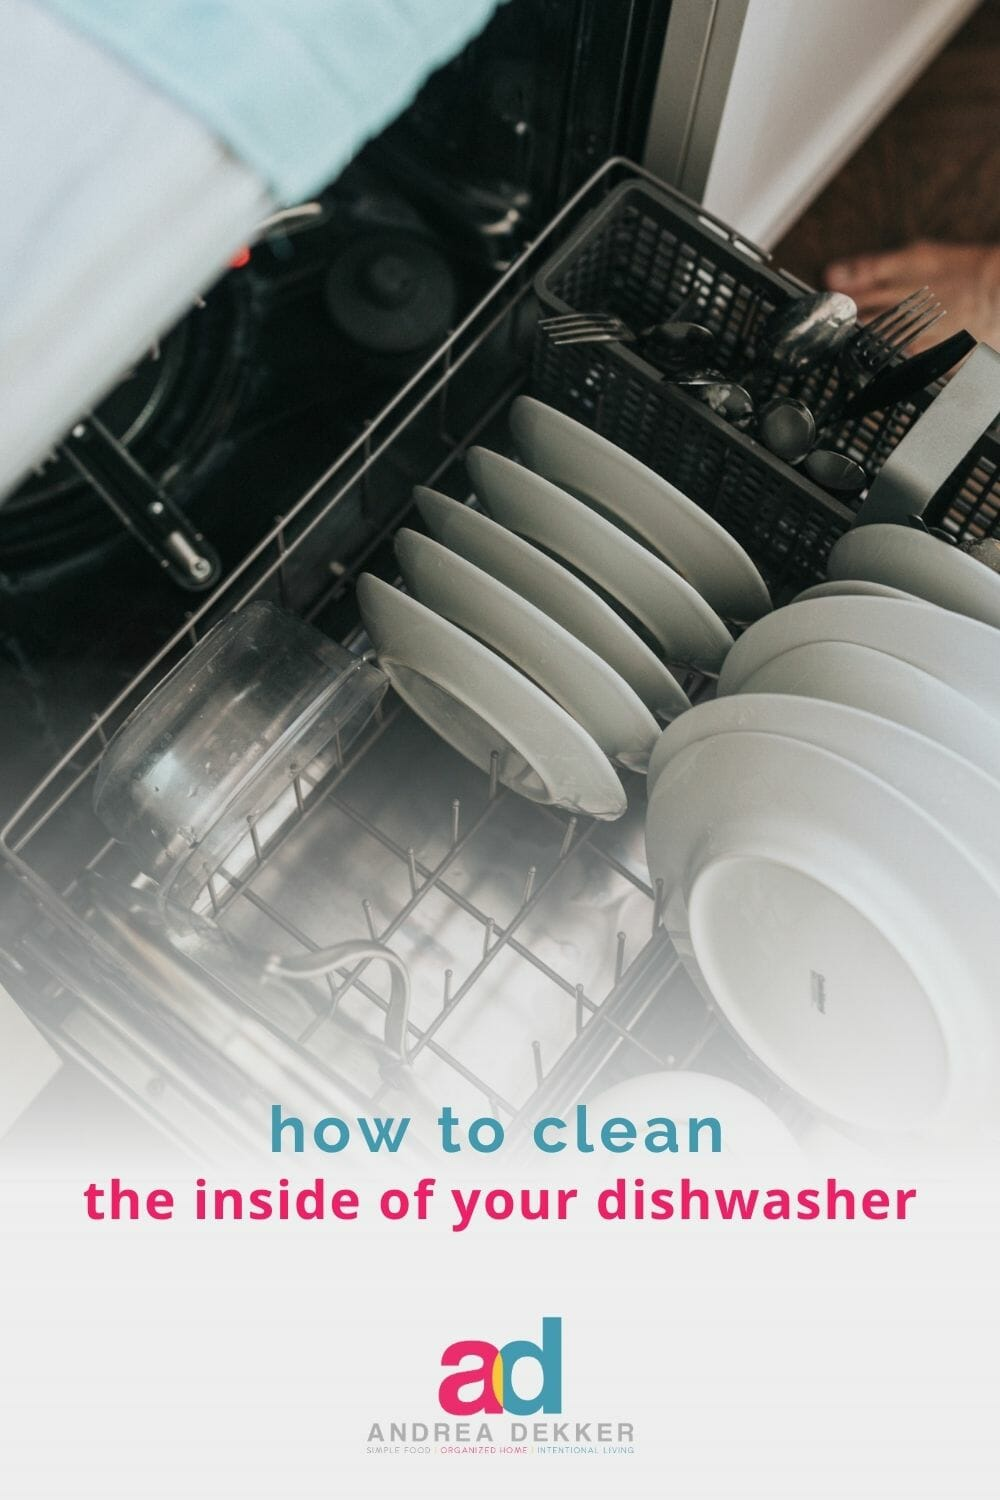 Get the simple, 3-step cleaning process that will have the inside of your dishwasher looking (and smelling) like new again! via @andreadekker